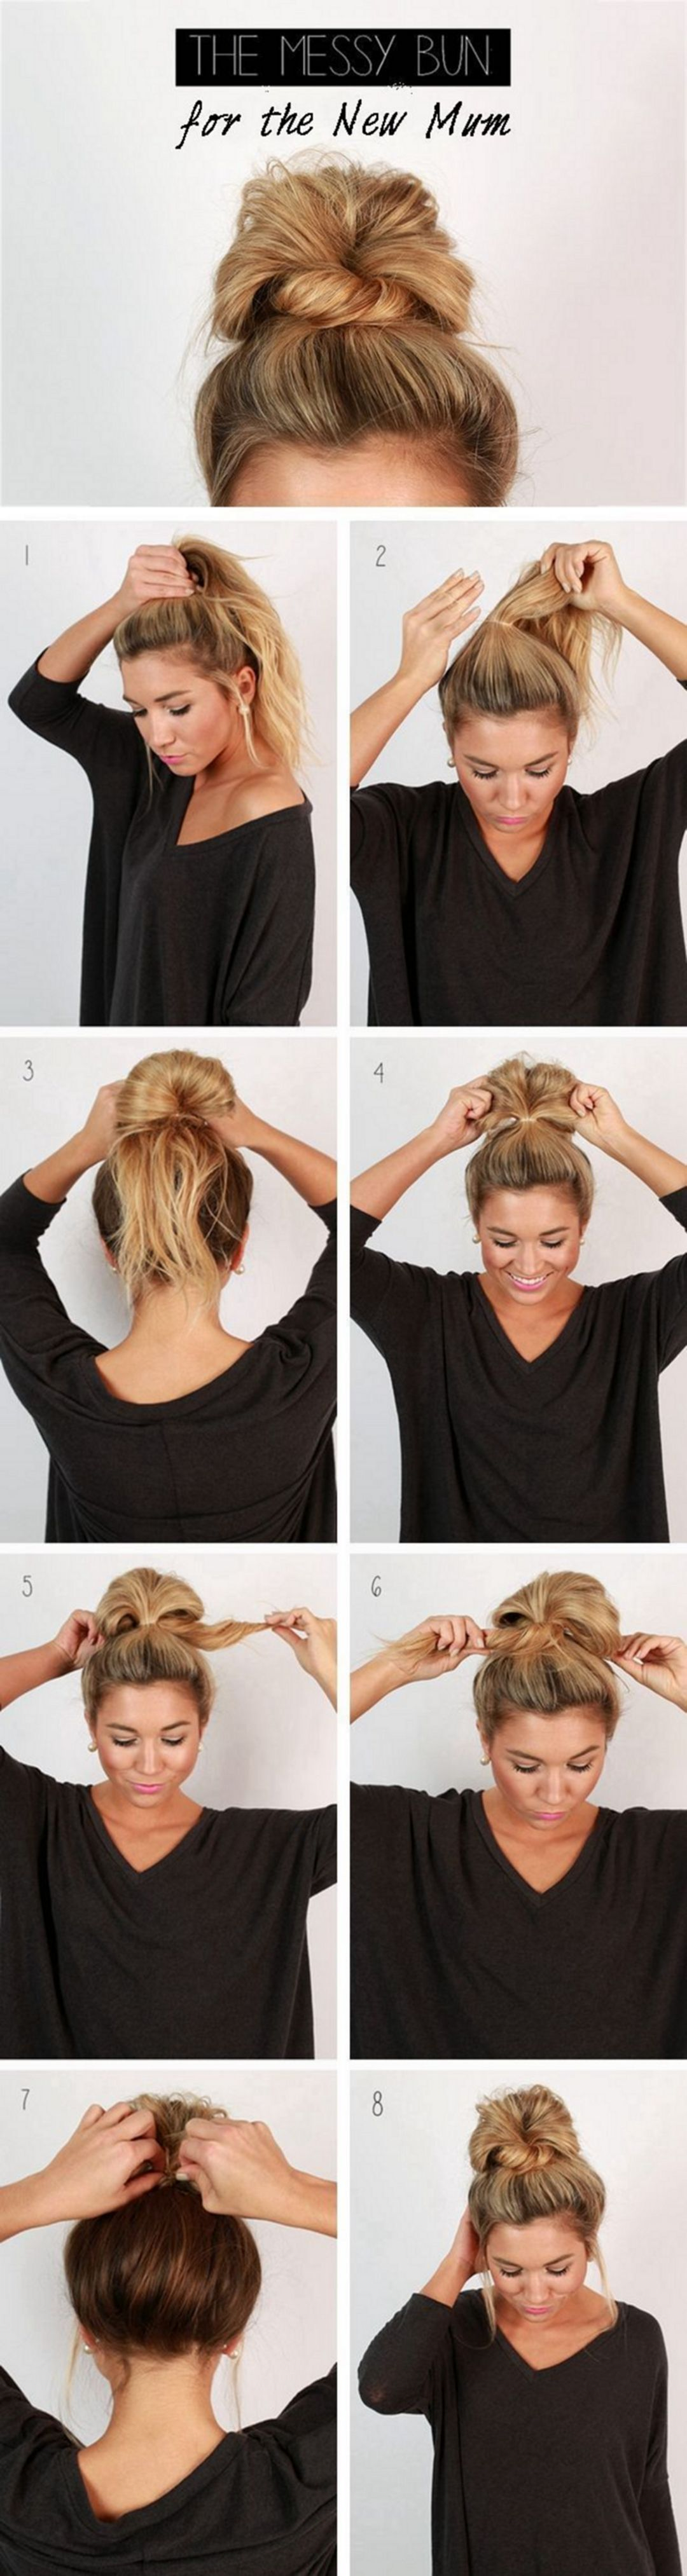 80 excellent and super easy updos for long hair inspirations 80 excellent and super easy updos for long hair inspirations quick school hairstyleseasy pmusecretfo Images